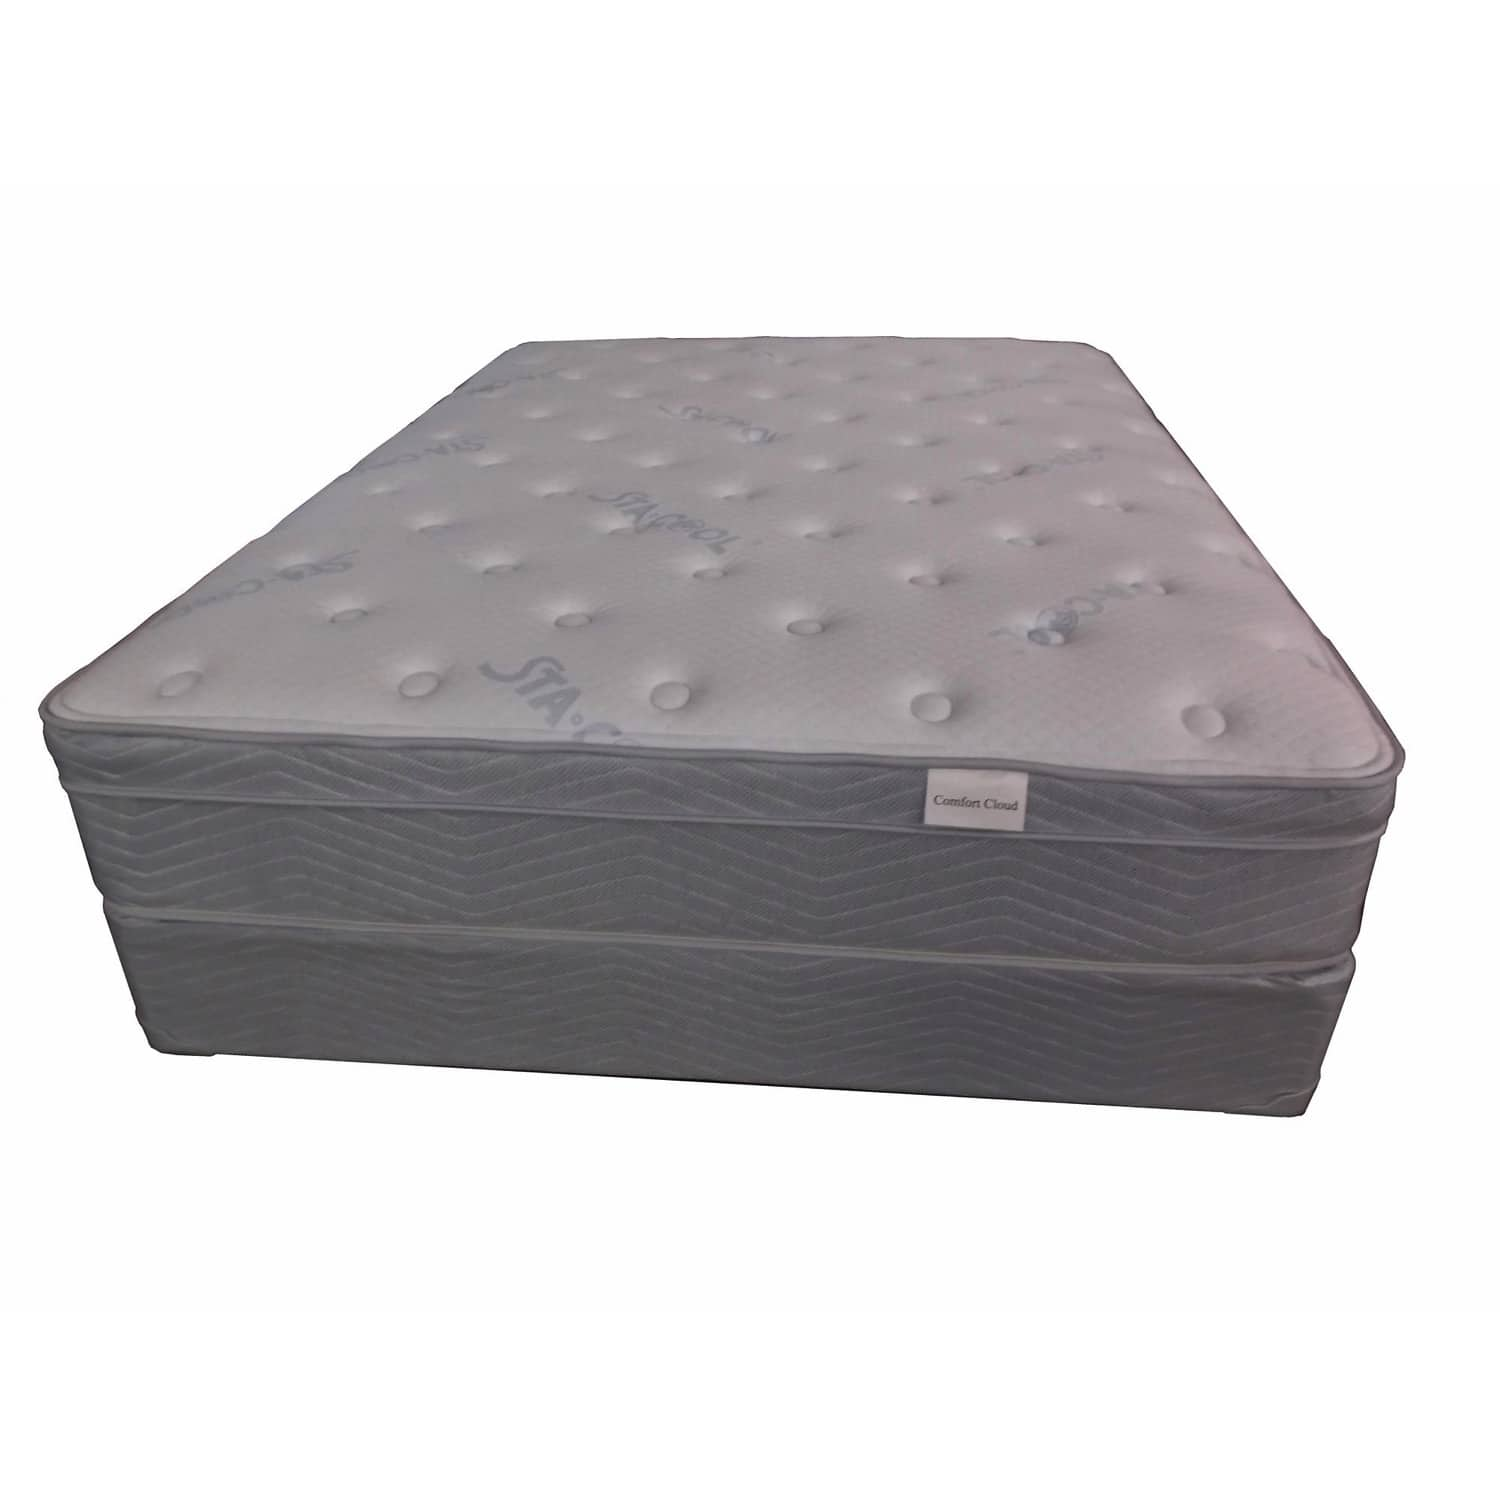 Therapedic Comfort Cloud Luxury Queen Mattress Set with Gel Memory Foam